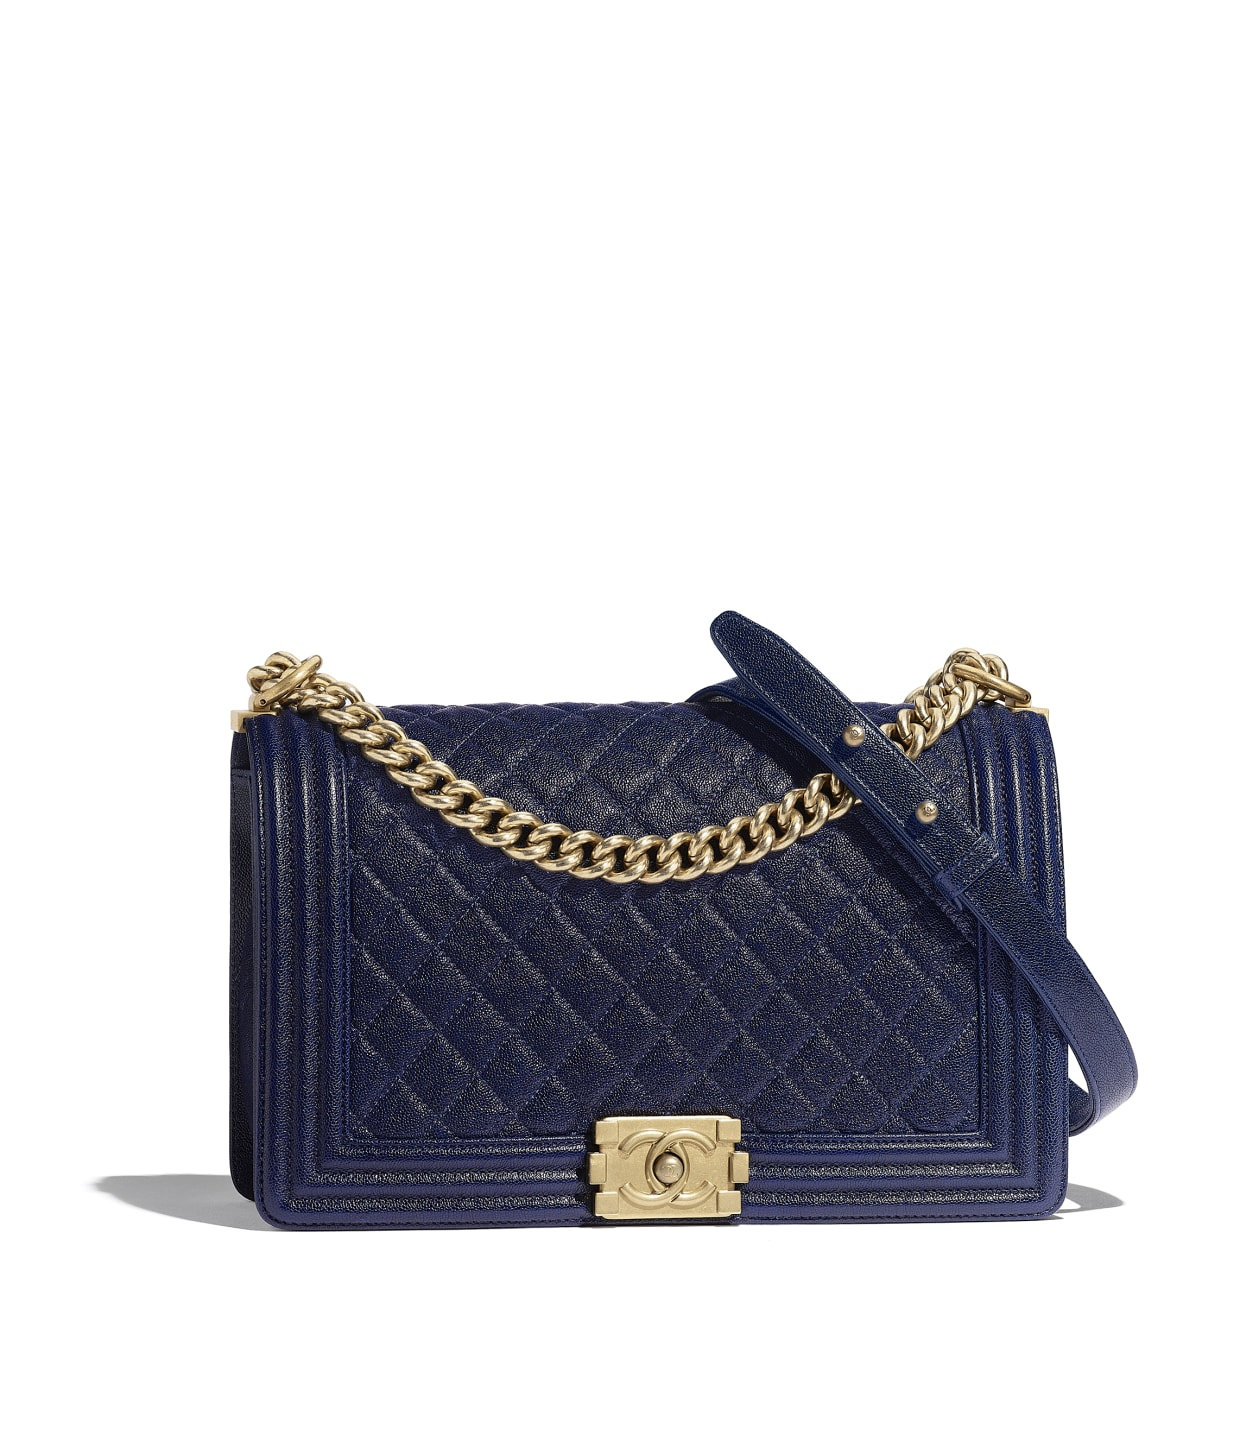 Grained Calfskin   Gold-Tone Metal Blue Large BOY CHANEL Handbag   CHANEL 31744f8f5ed